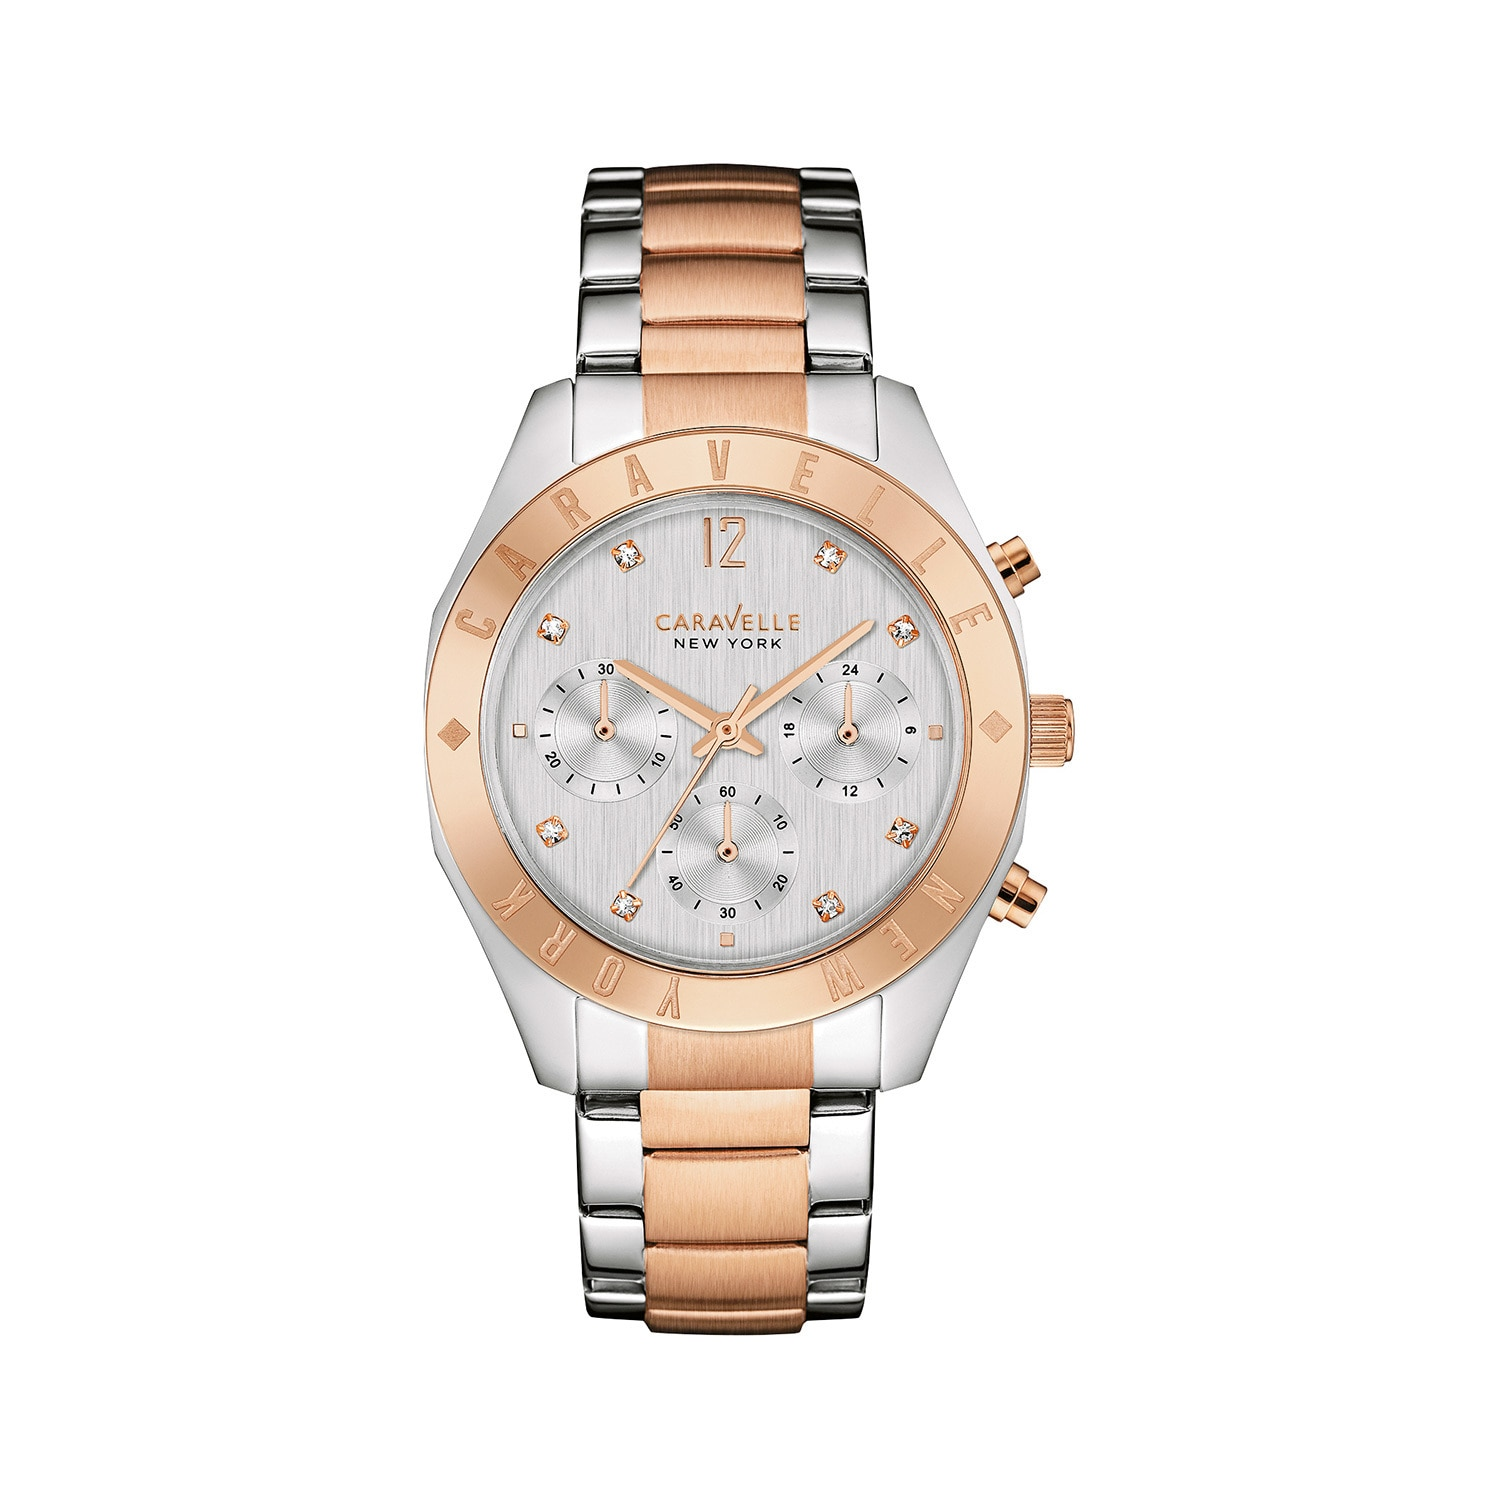 BULOVA Caravelle NY Women's 45L156 Two-tone Stainless Chr...